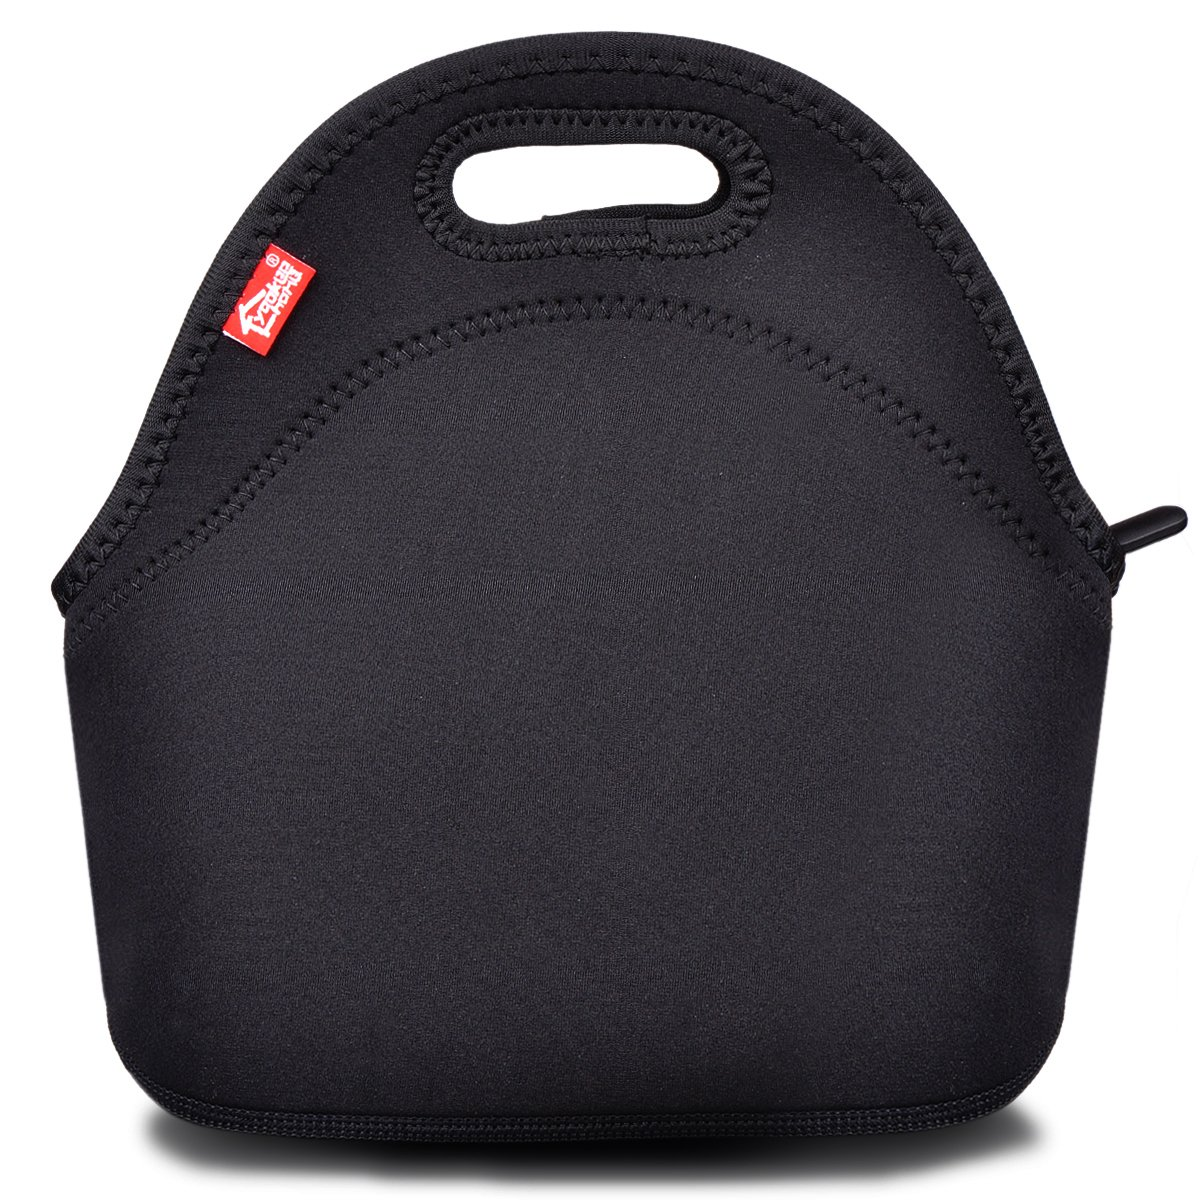 Black Neoprene Lunch Tote, Yookeehome Thick Reusable Insulated Thermal Lunch Bag Small Neoprene Lunch Box Carry Case Handbags Tote with Zipper for Adults Kids Nurse Teacher Work Outdoor Travel Picnic by youkee